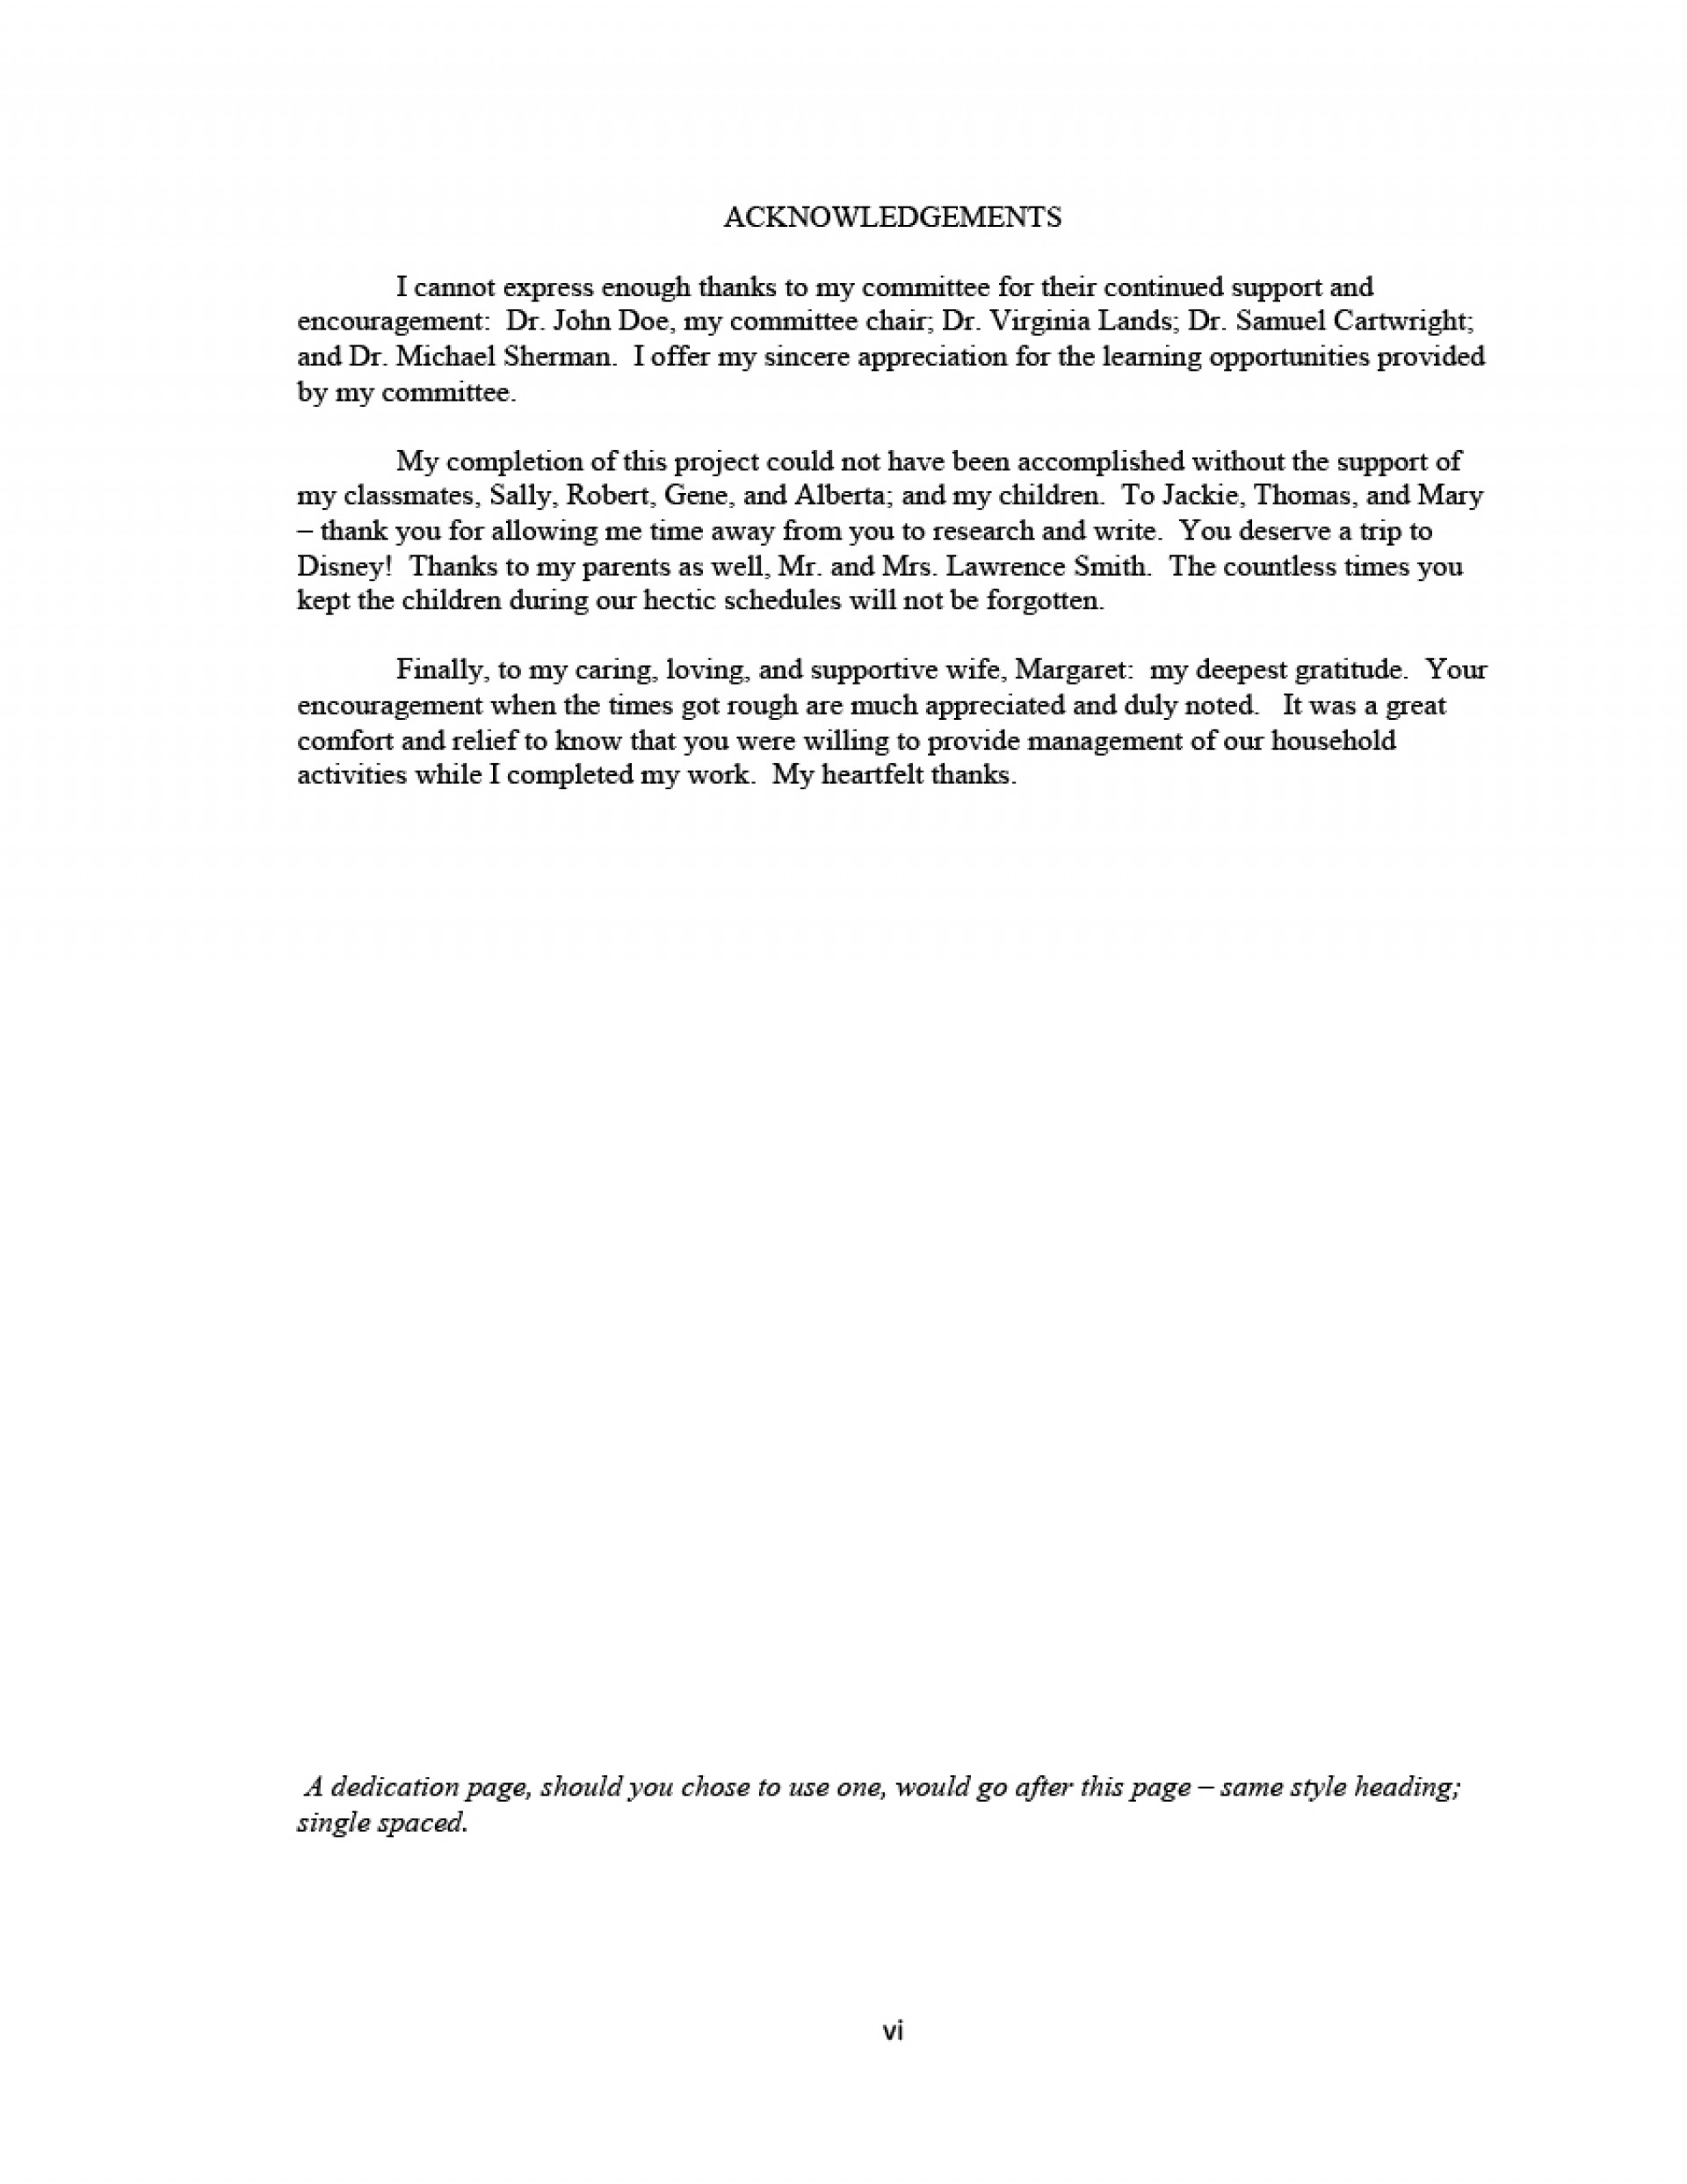 005 Research Paper Example Of Acknowledgement In Group Sample Top Pdf 1920